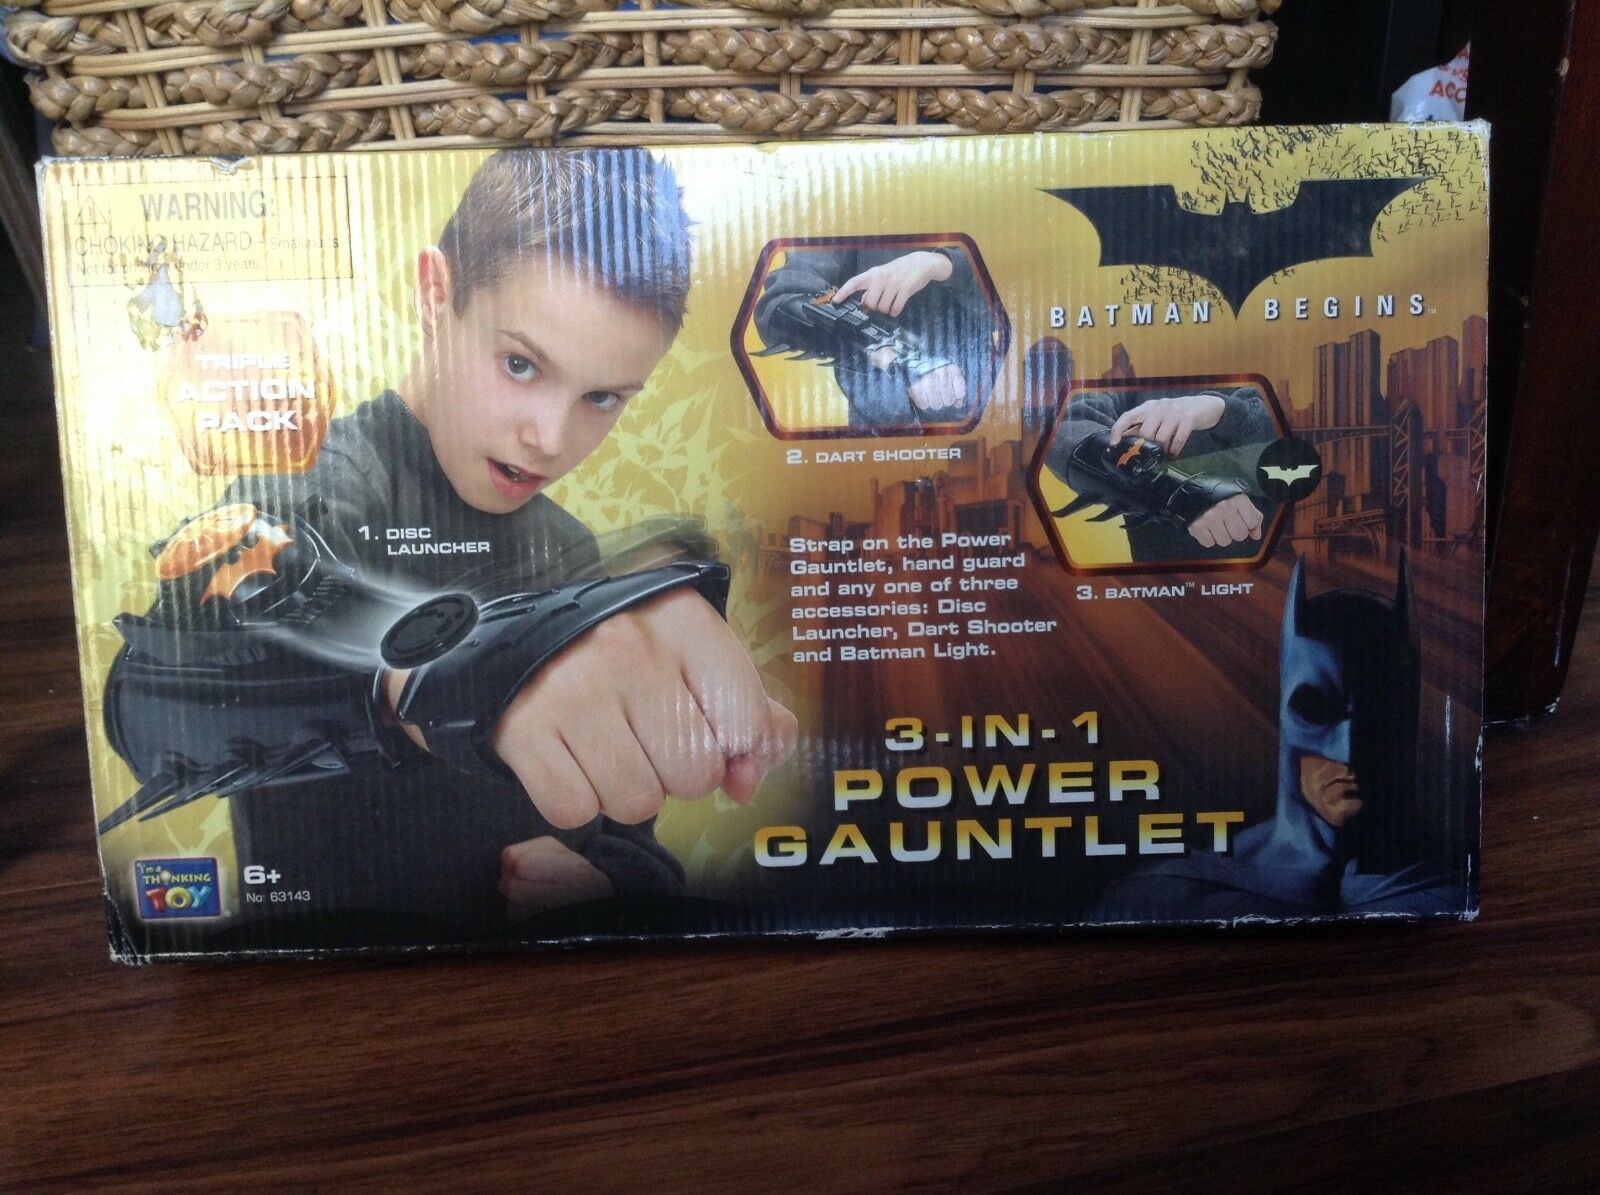 Batman Begins Begins Begins 3-IN-1 Power Gauntlet NEW IN BOX cf3aa2